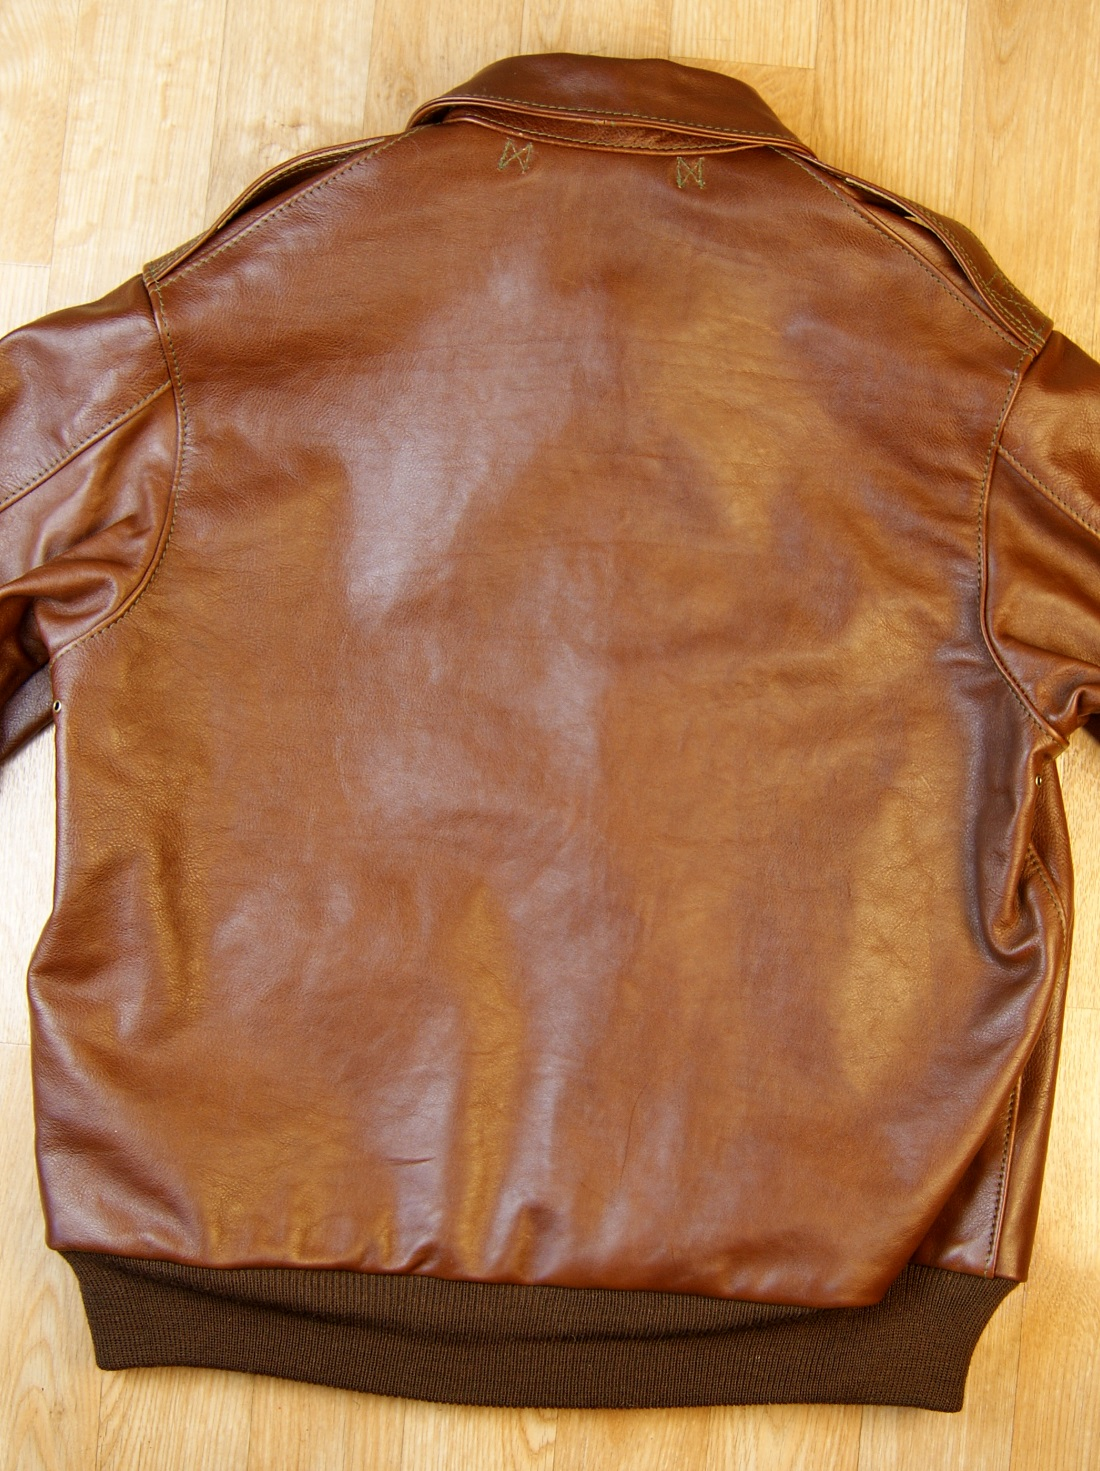 Aero Unknown Maker Russet Vicenza Horsehide KM7 back.jpg